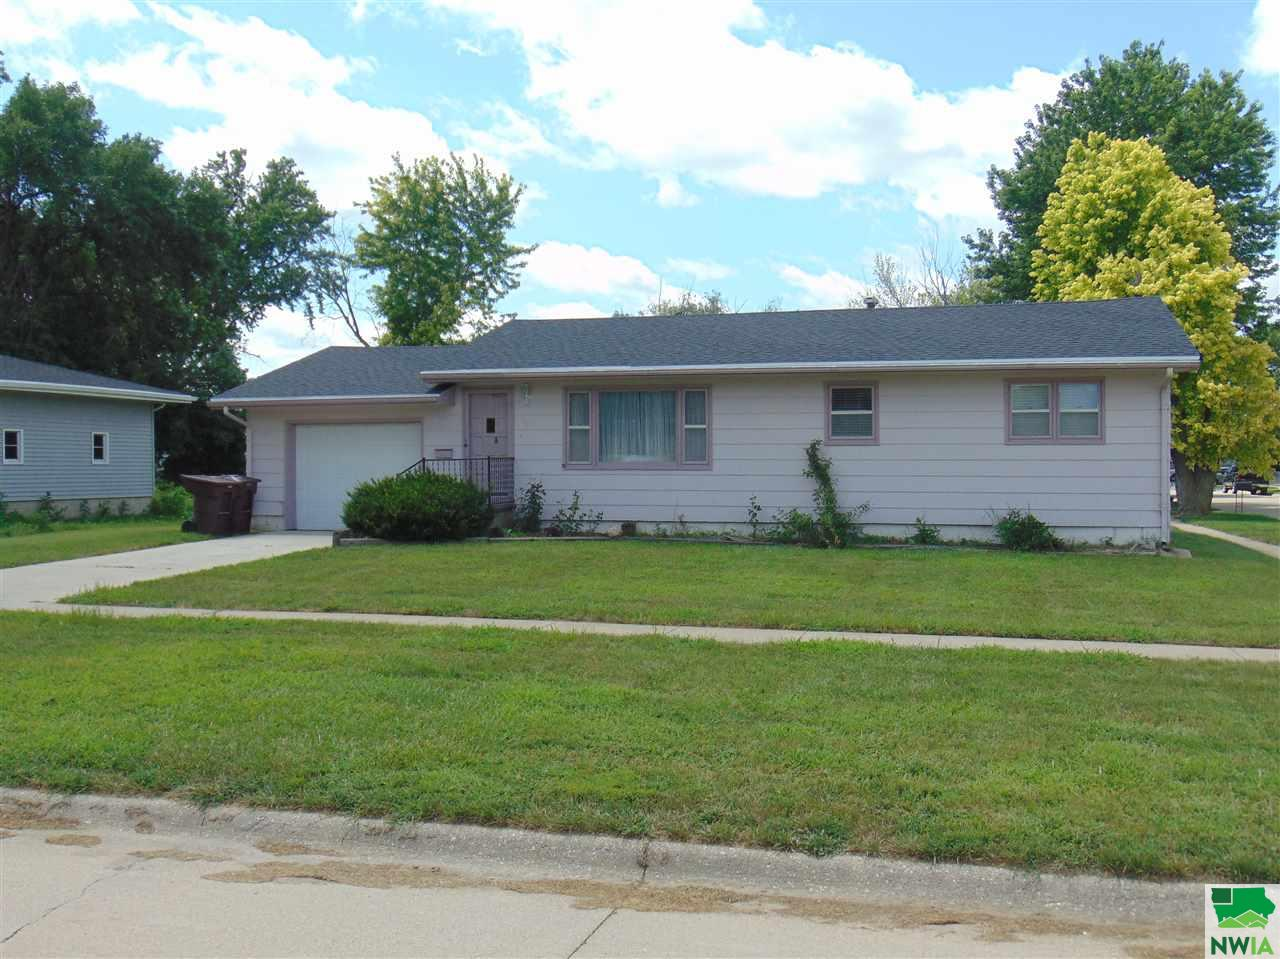 Property for sale at 1401 3rd Ave., South Sioux City,  NE 68776